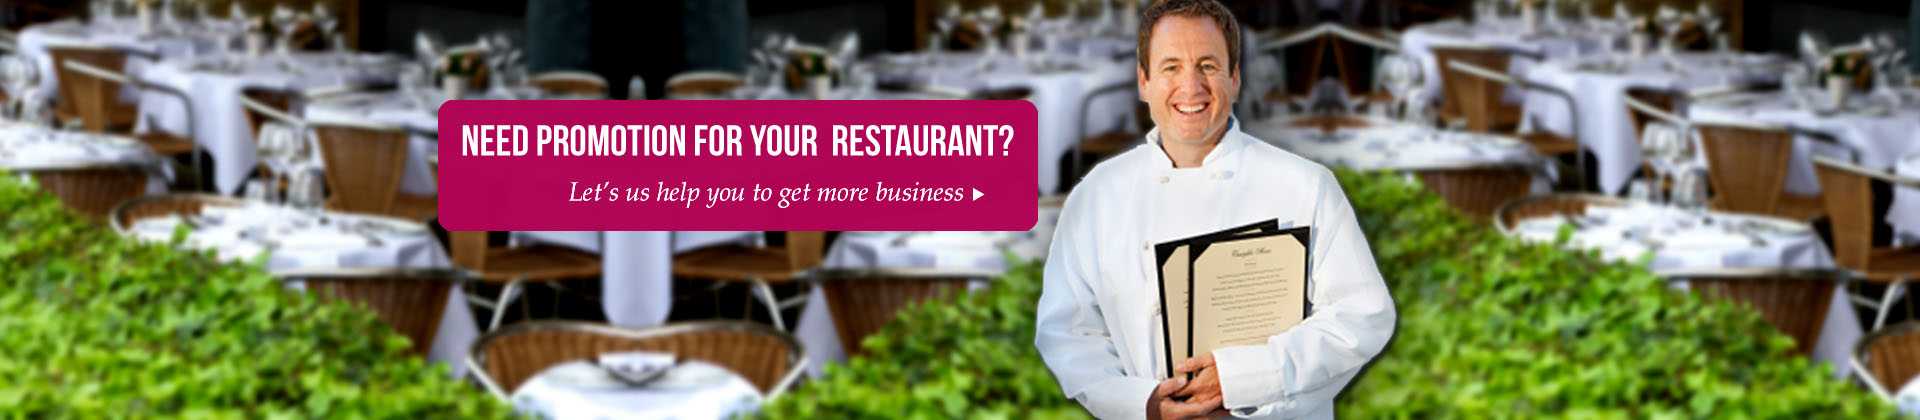 Restaurant Marketing collateral